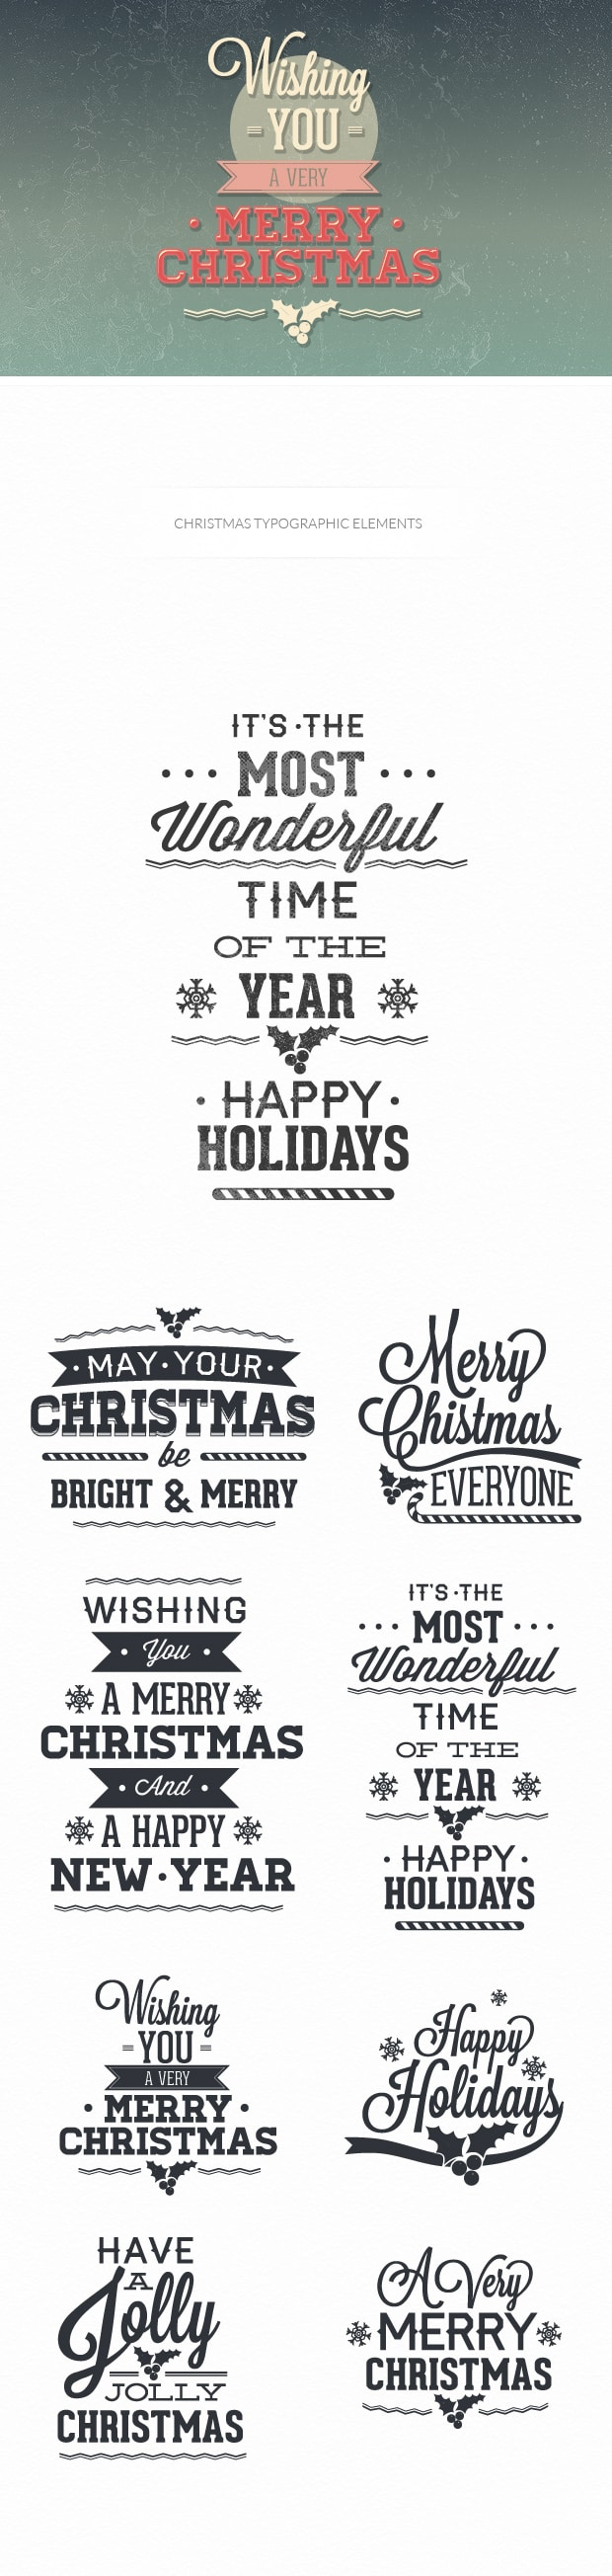 Christmas day typographic elements TypeZilla christmas preview